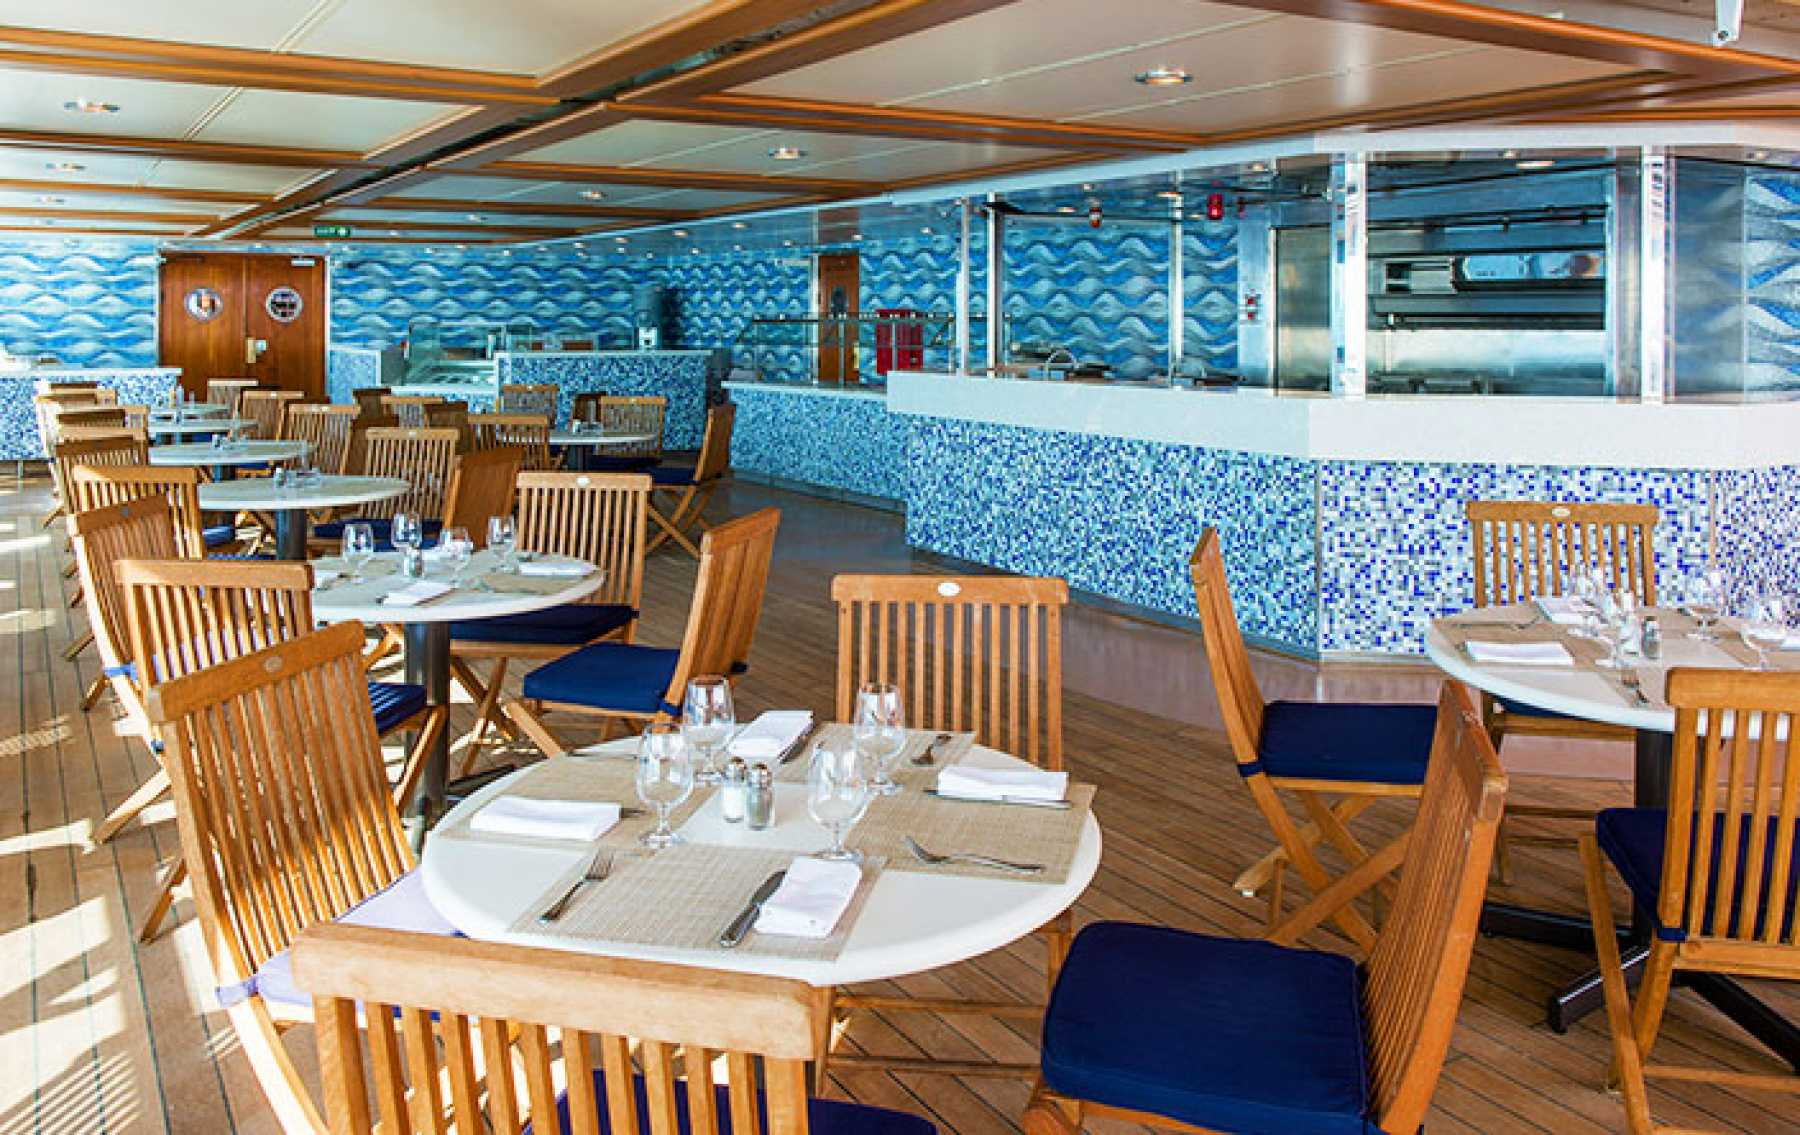 Oceania Cruises Sirena Interior waves-grill.jpg